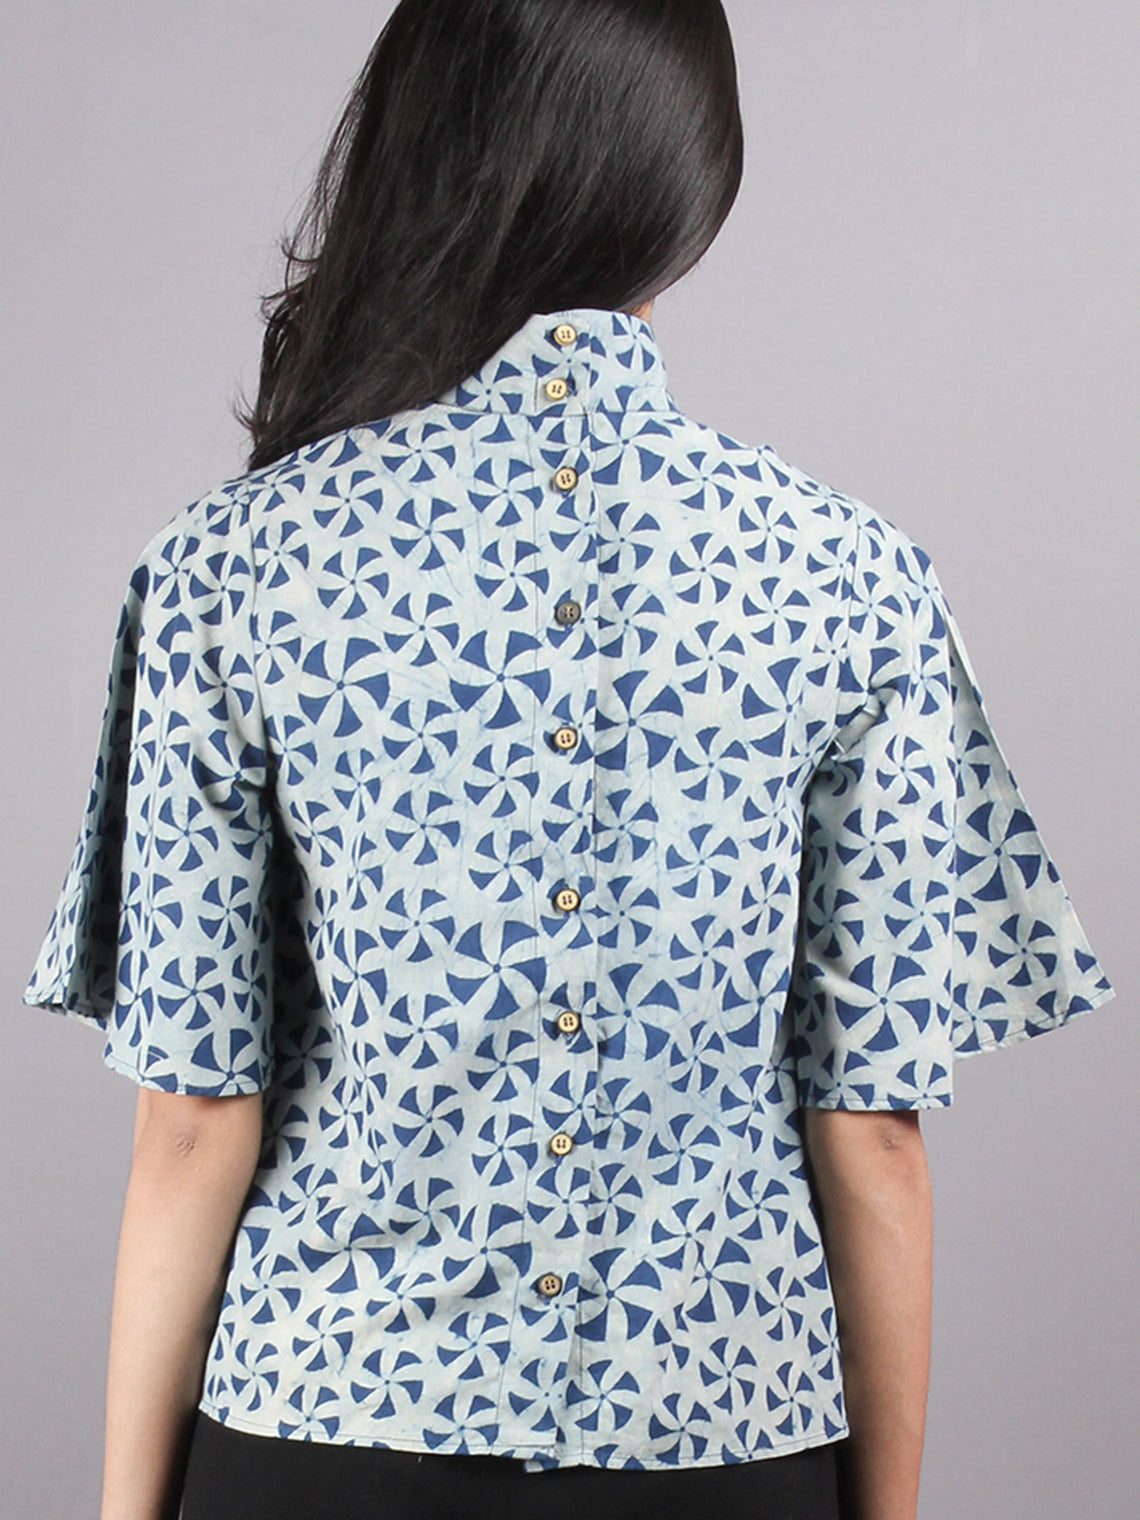 Indigo High Neck Hand Block Printed Cotton Flared Sleeves Back Buttons Top - T1137003